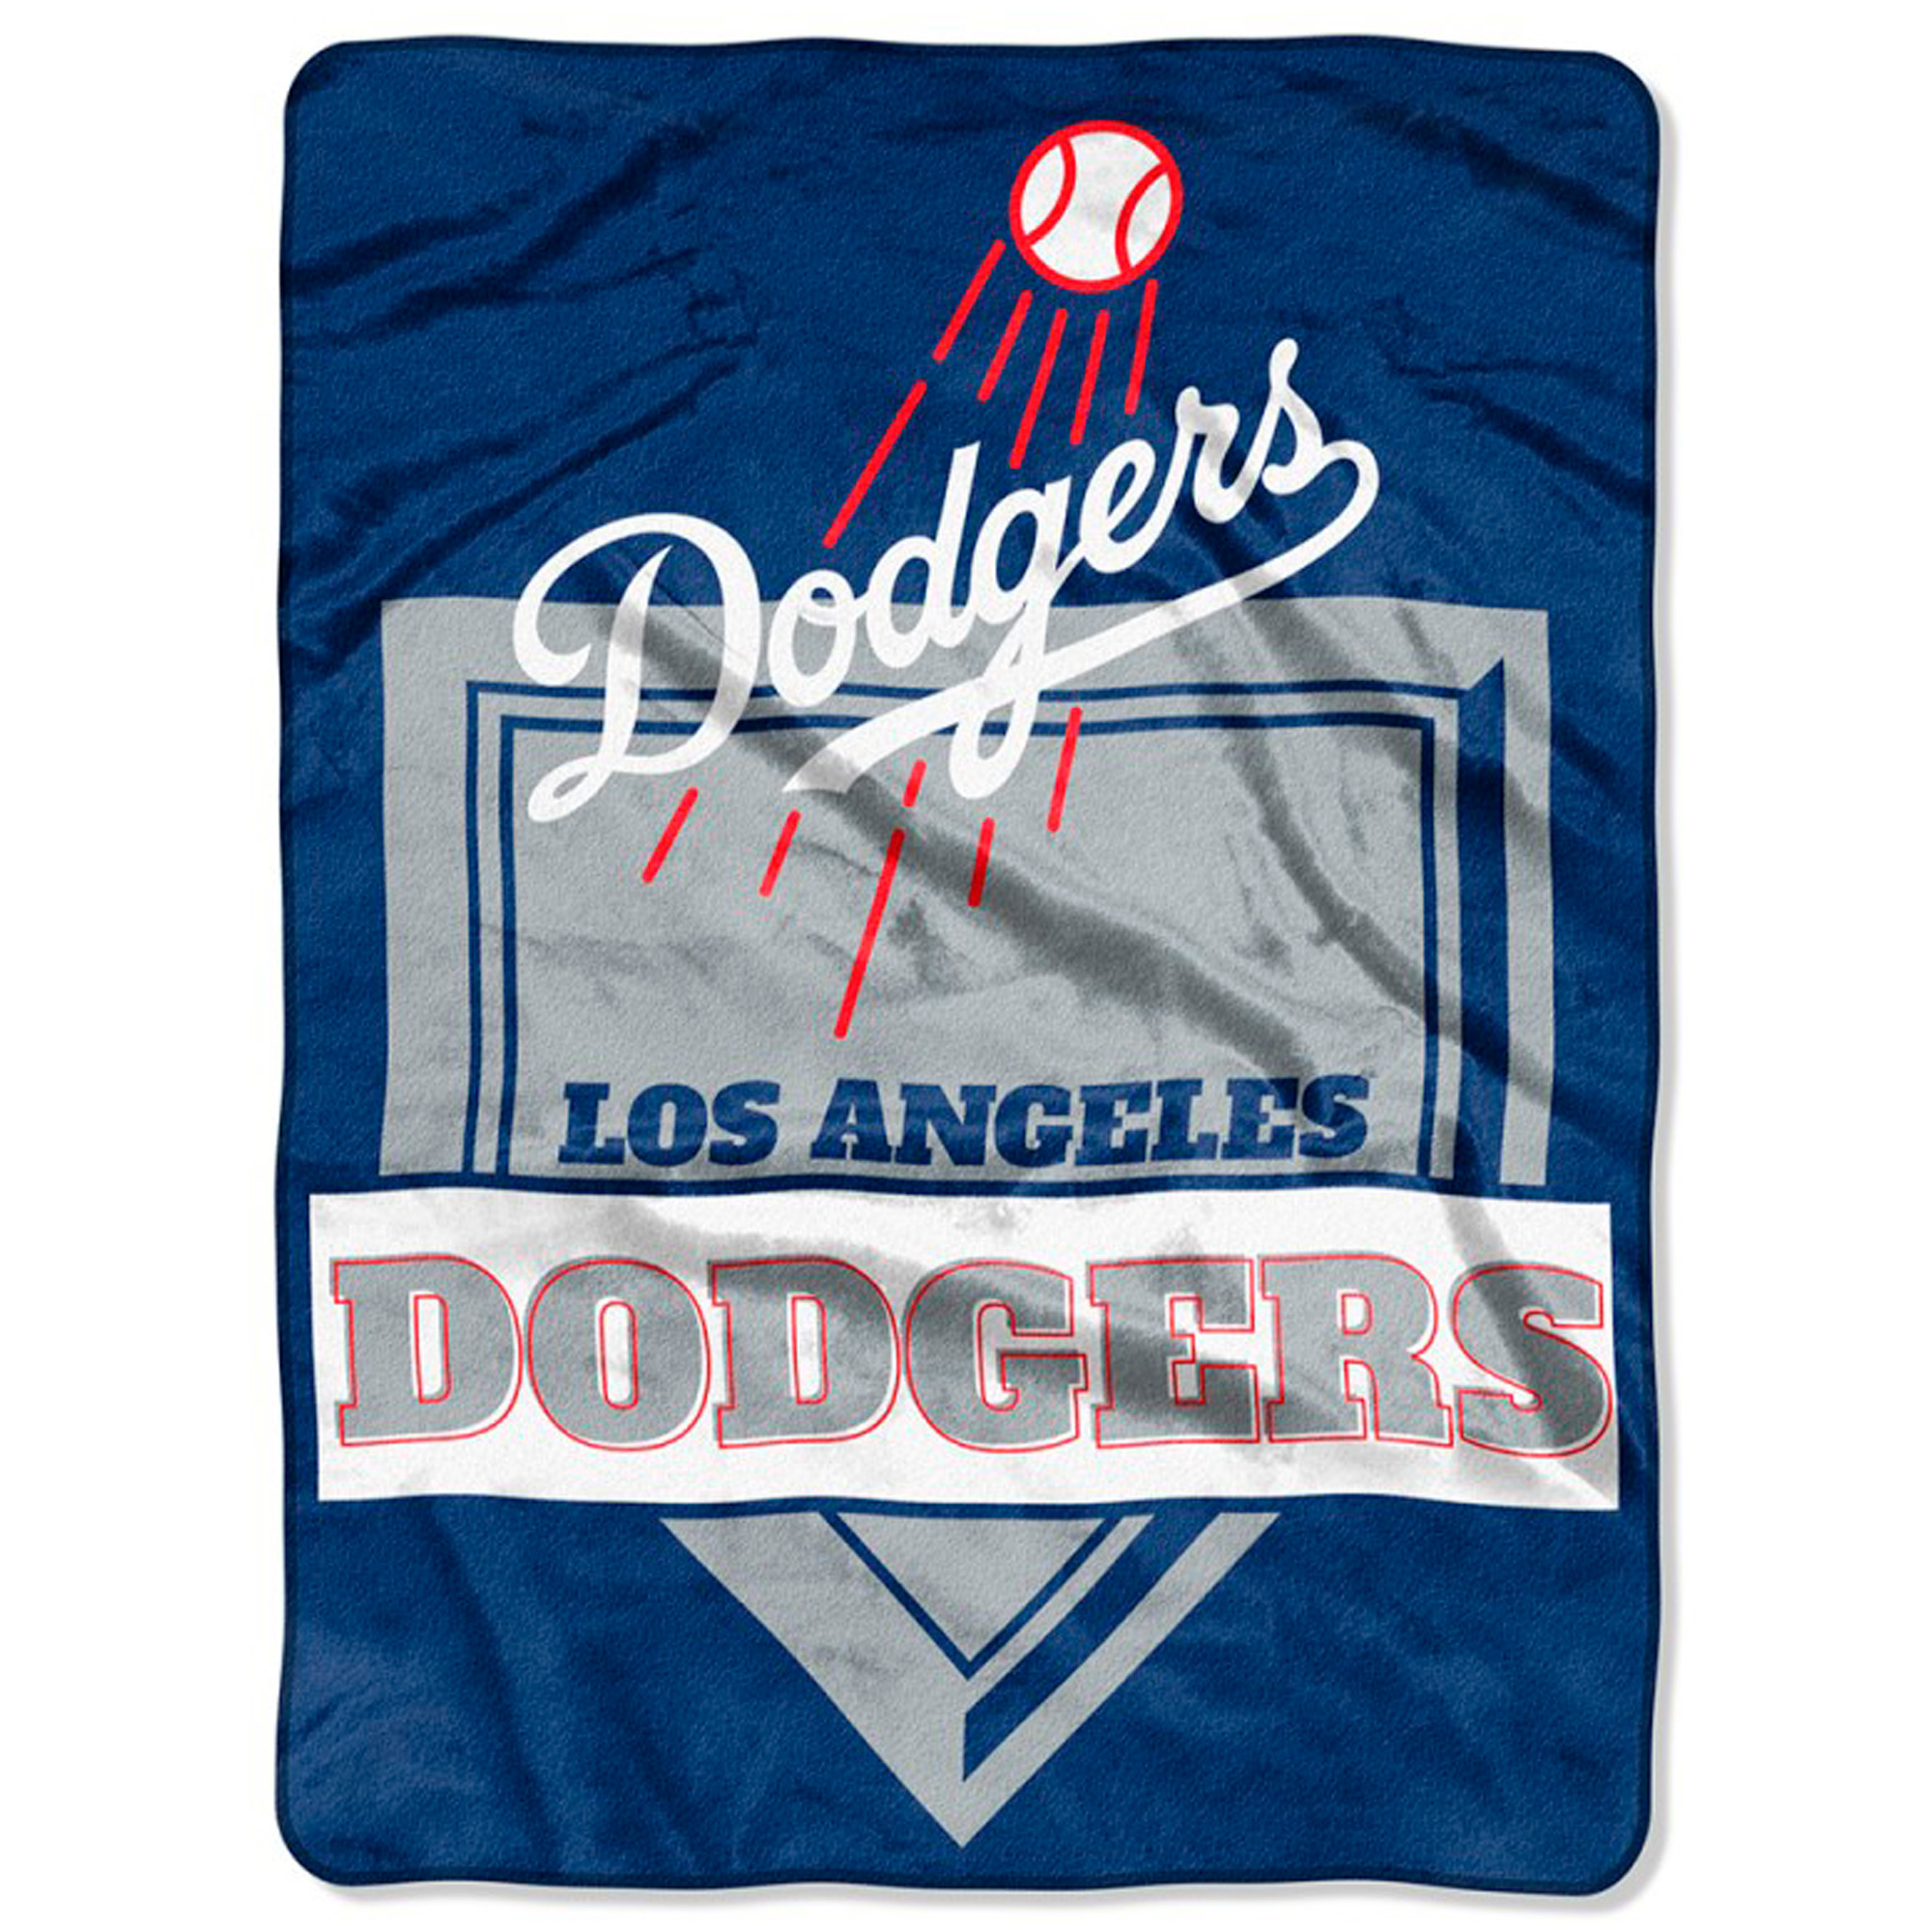 "Los Angeles Dodgers The Northwest Company 60"" x 80"" Home Plate Raschel Plush Blanket - No Size"